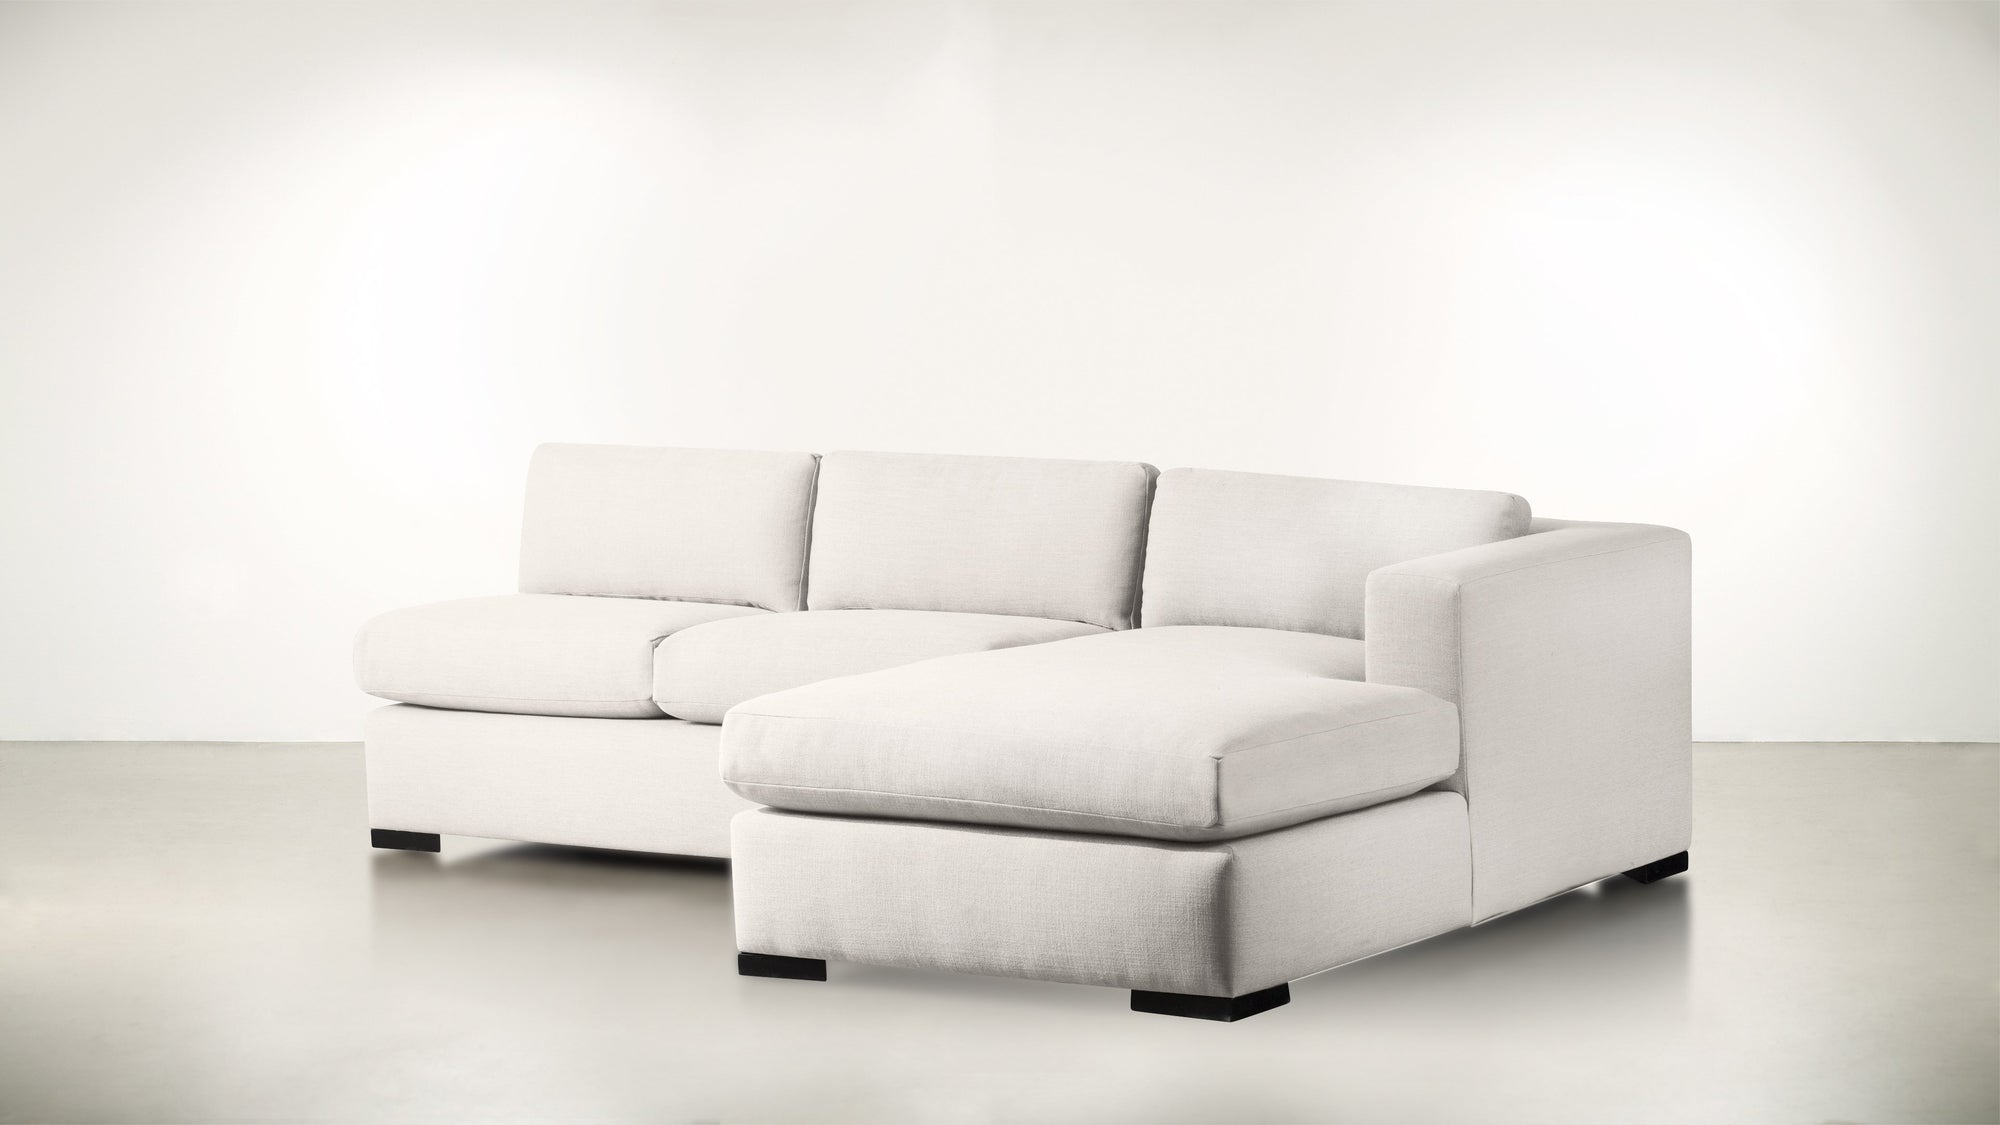 The Trash Talker R Modular Sectional